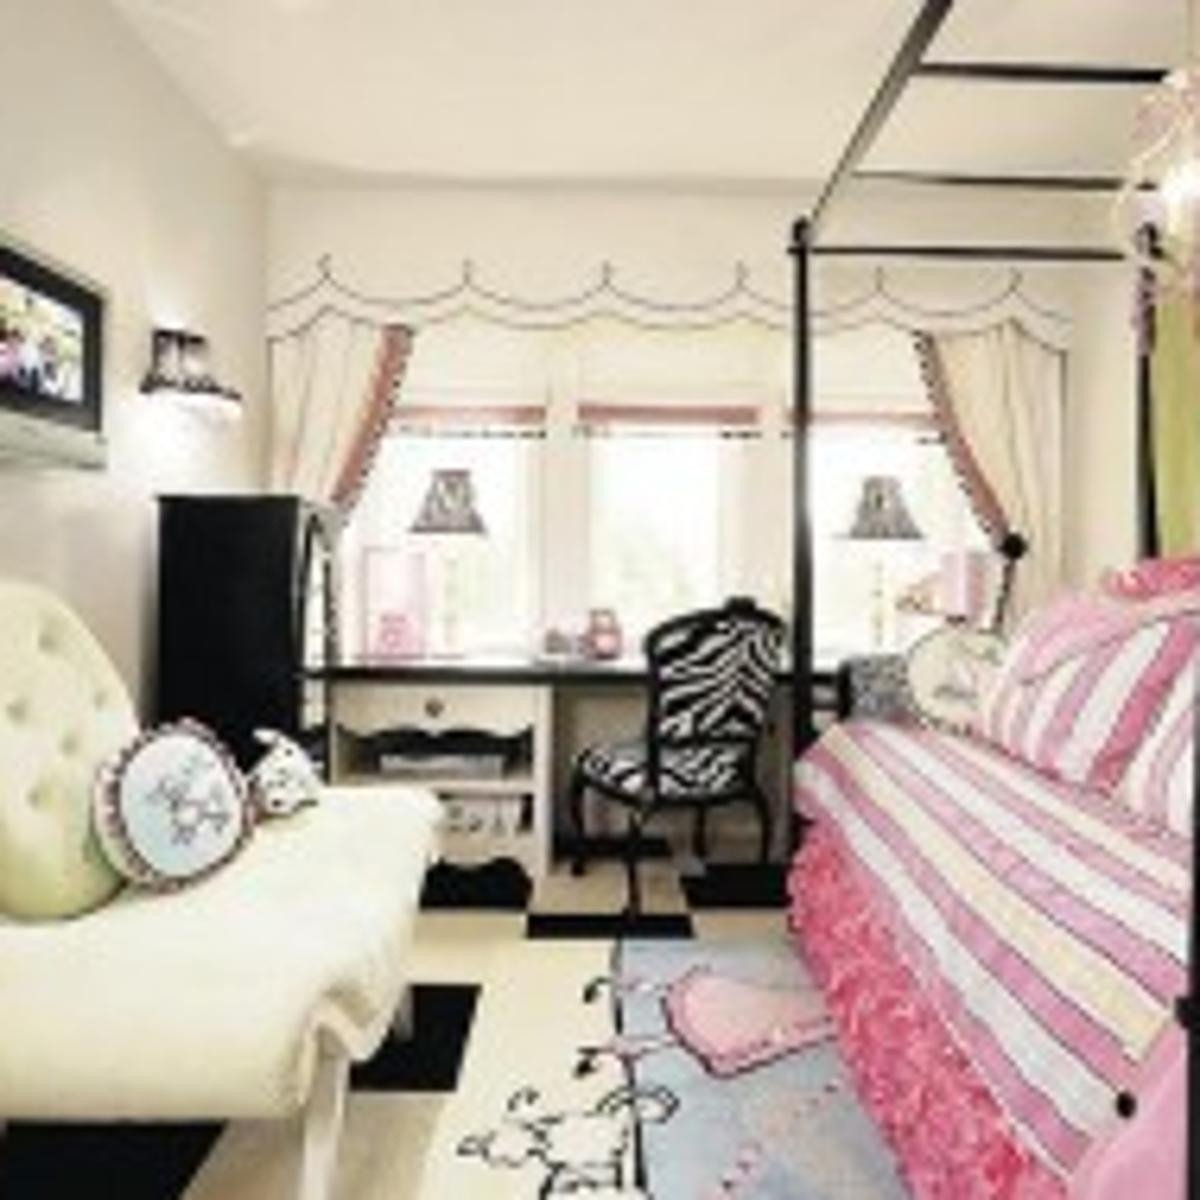 Chandelier for Girls Bedroom Fresh Bedroom is Dream E True for Ailing Girl